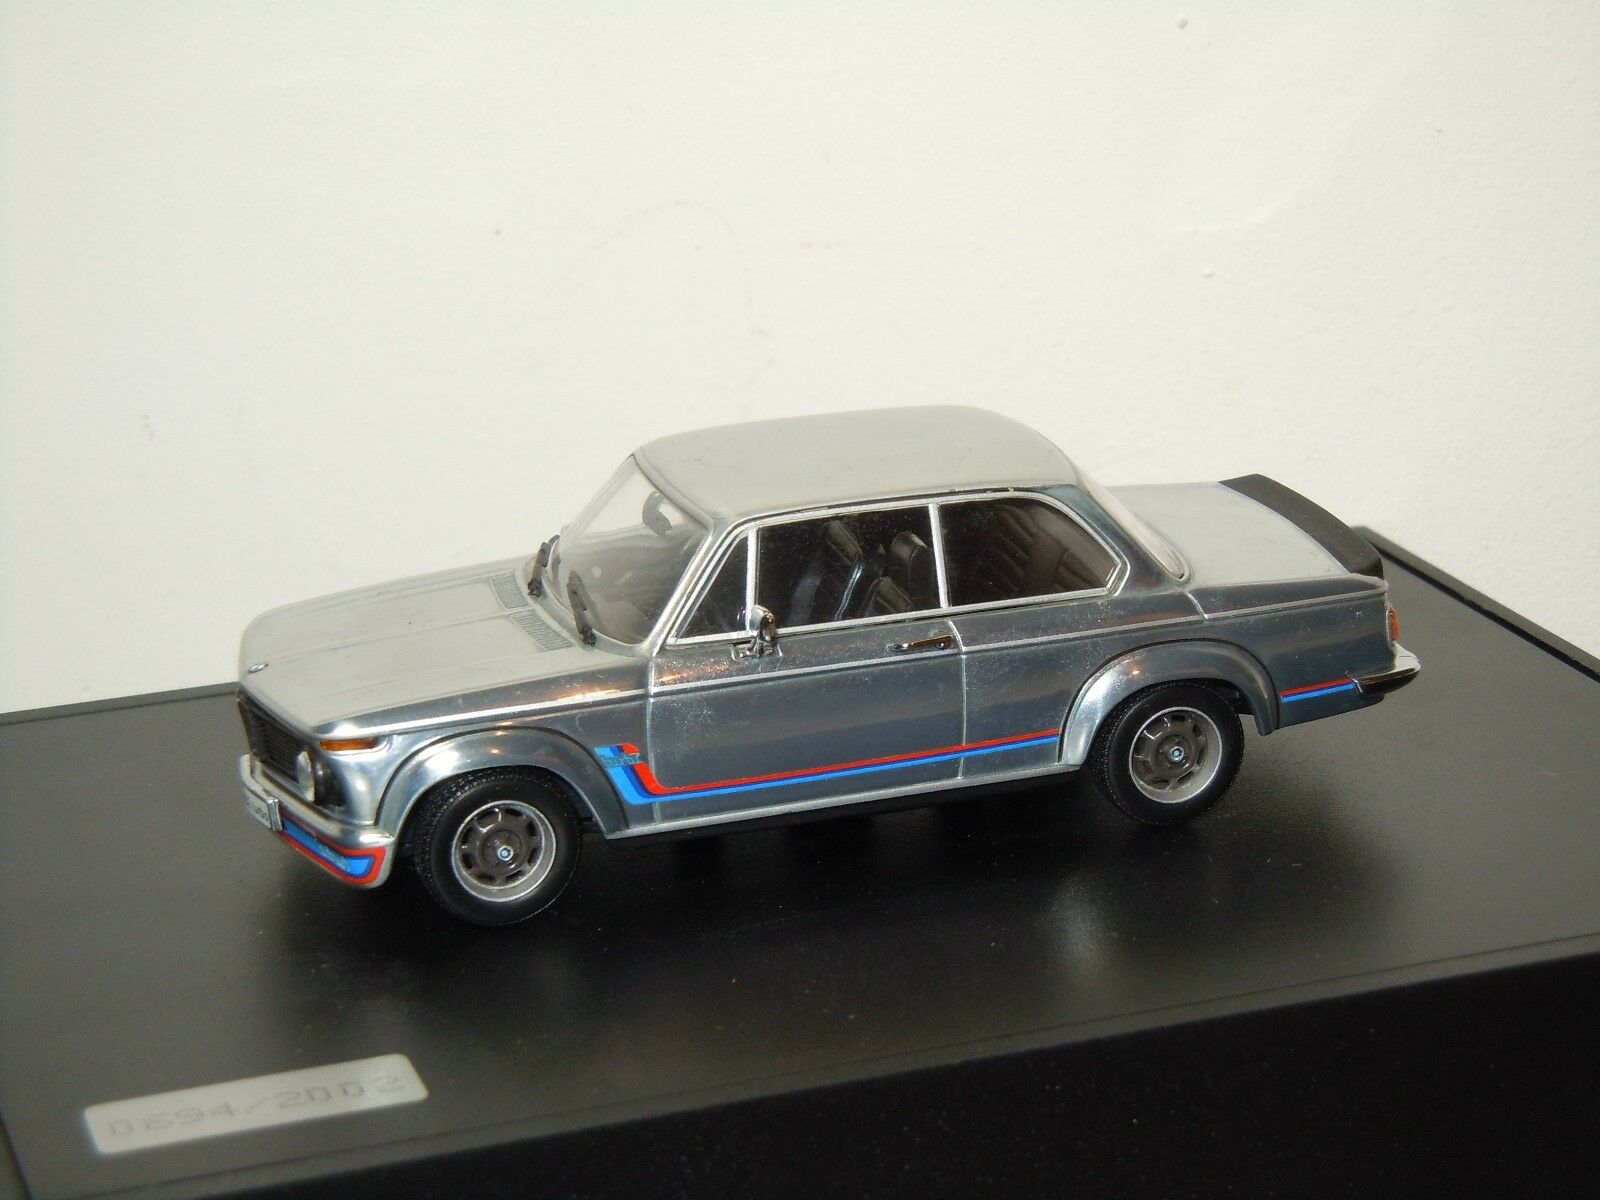 Bmw 2002 turbo - minichamps 1 43 in kasten  30834